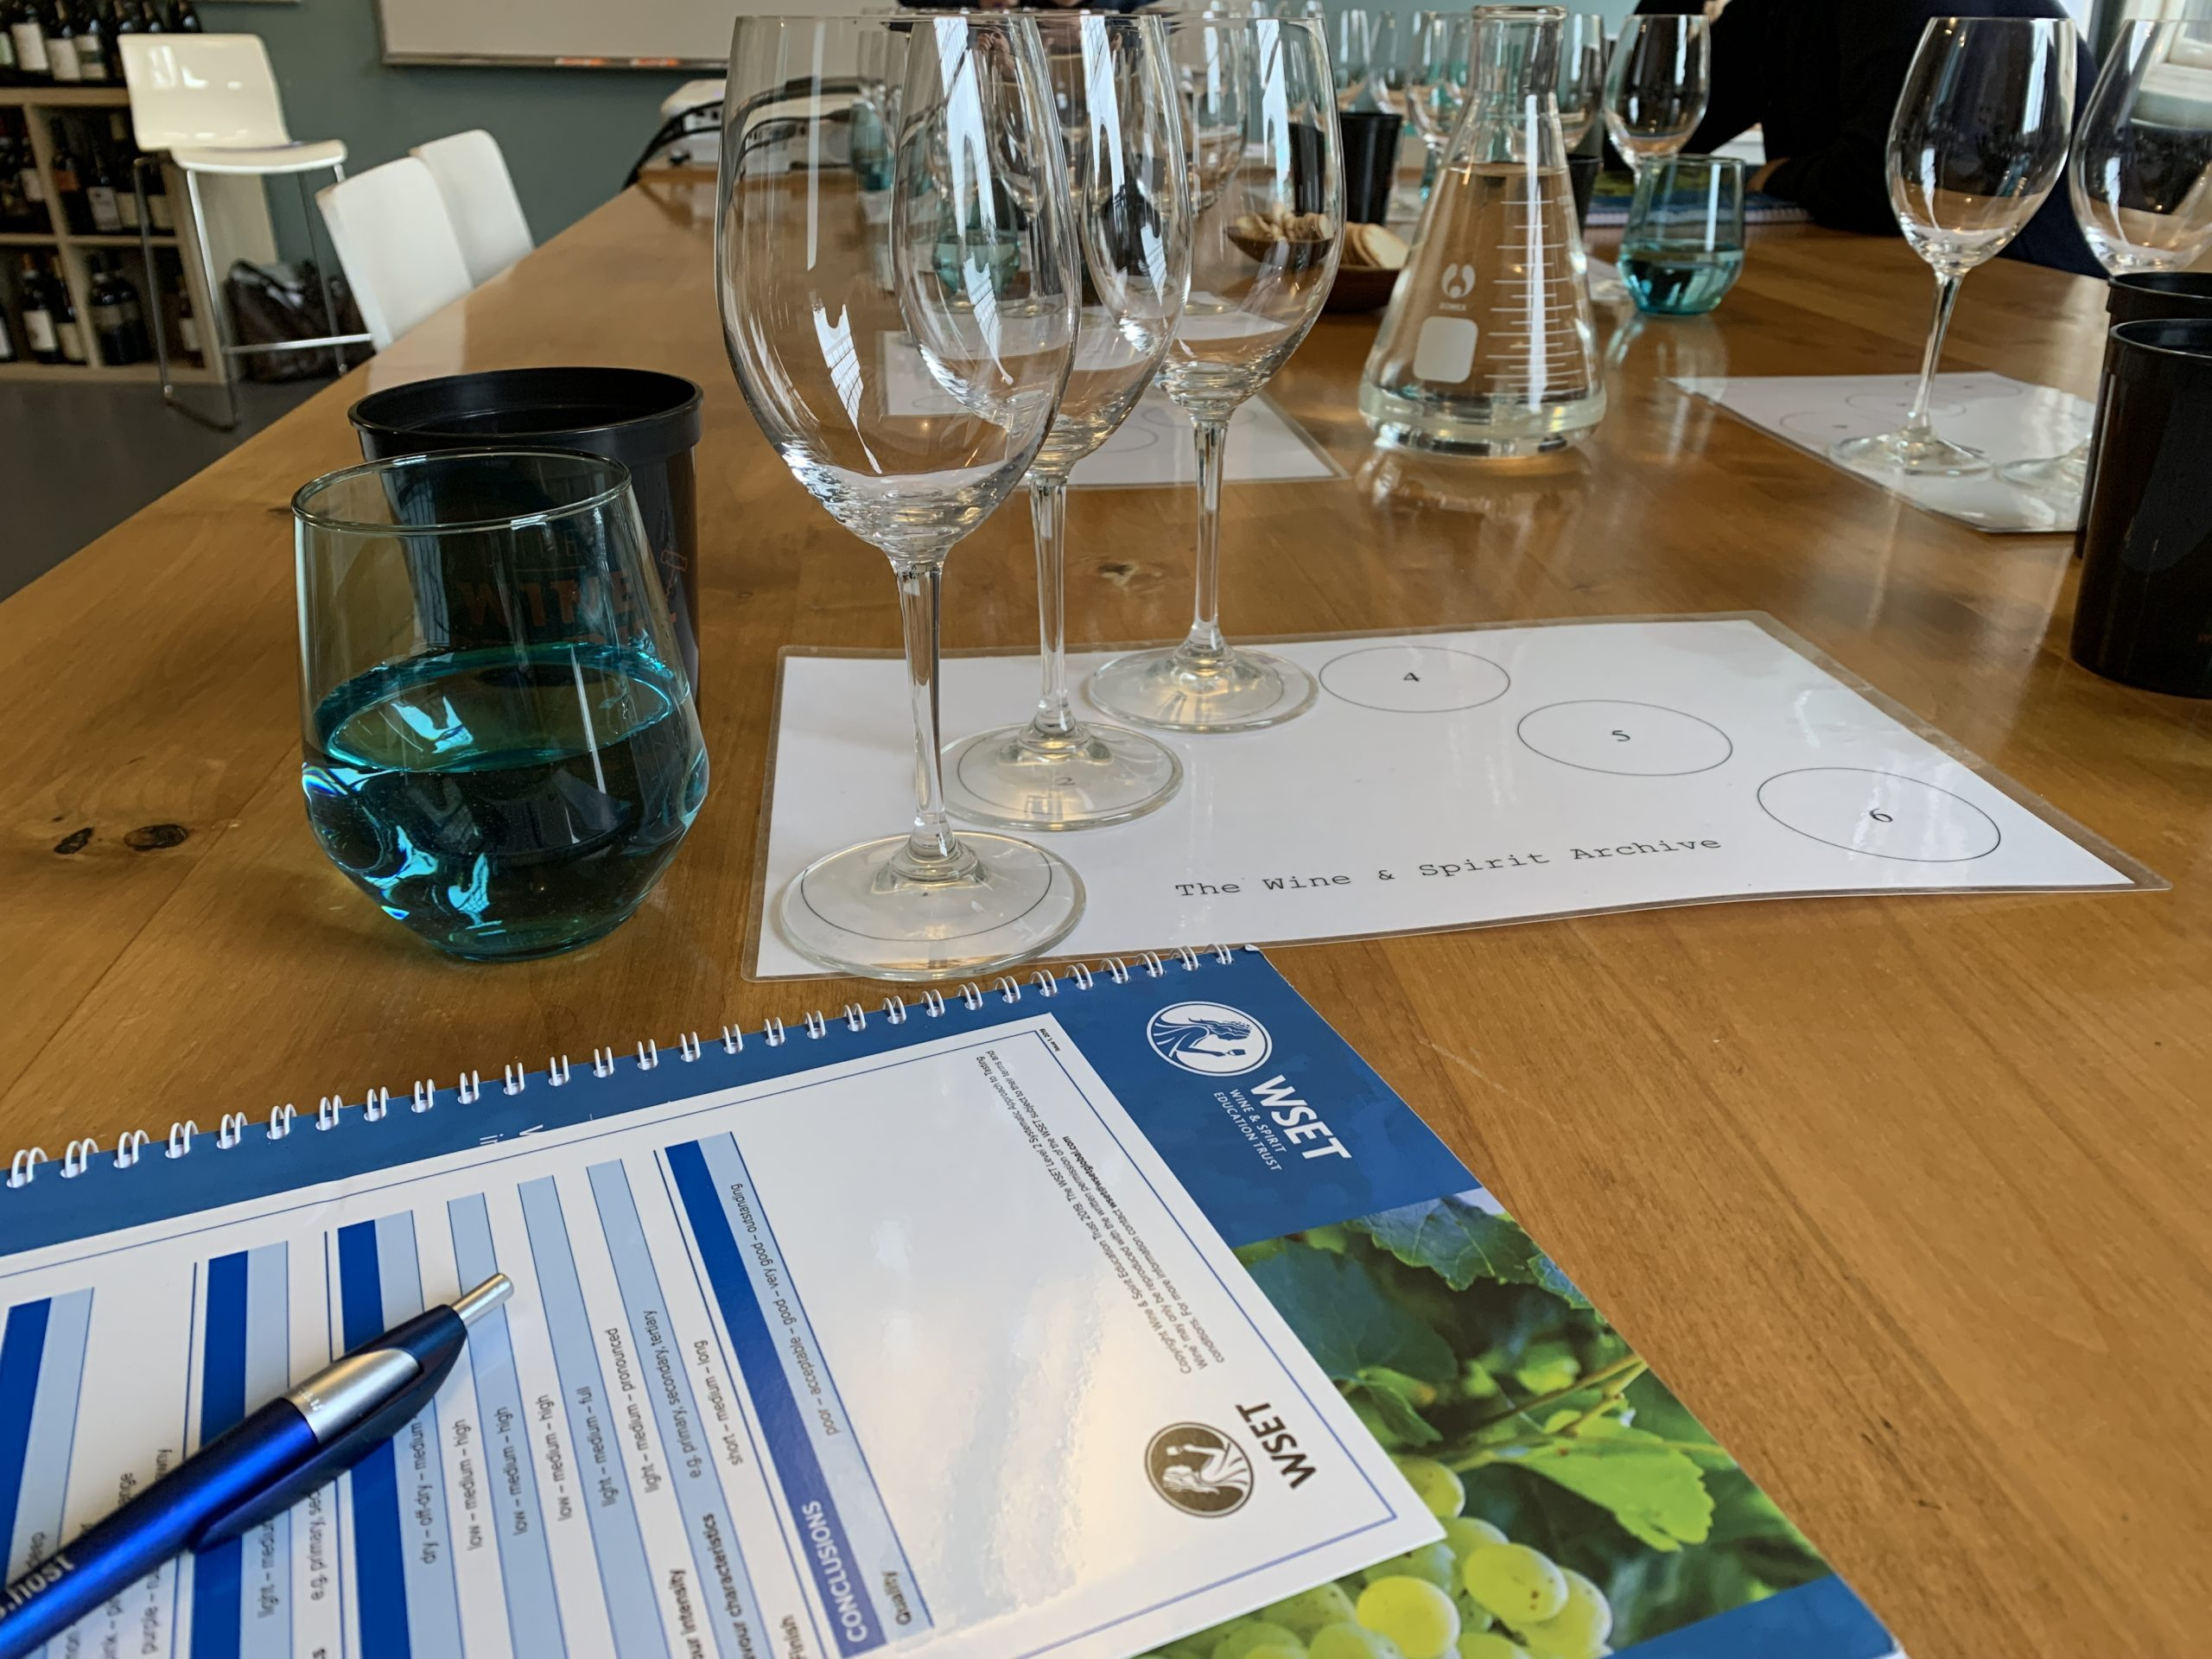 Taking classes to earn my WSET Level 2 Award in Wine